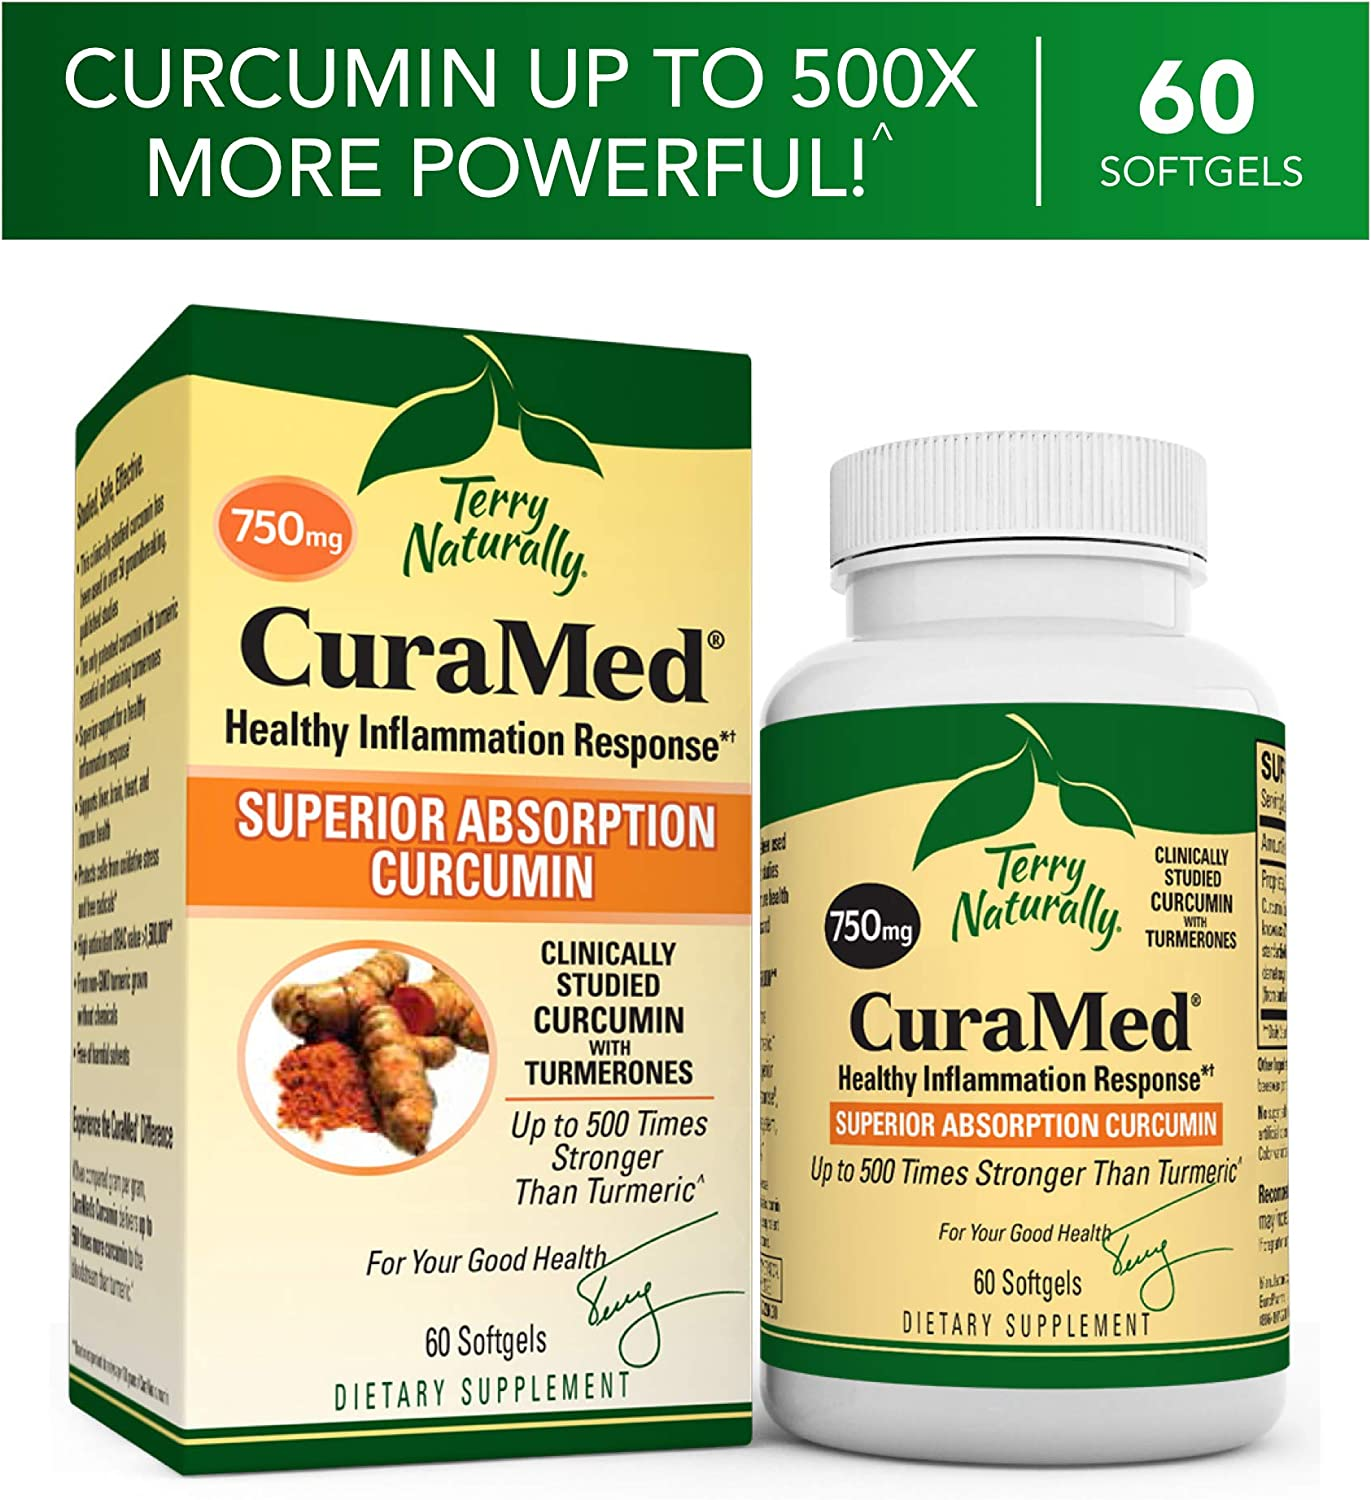 Terry Naturally CuraMed 750 mg – 60 Softgels – Superior Absorption BCM-95 Curcumin Supplement, Promotes Healthy Inflammation Response – Non-GMO, Gluten-Free, Halal – 60 Servings